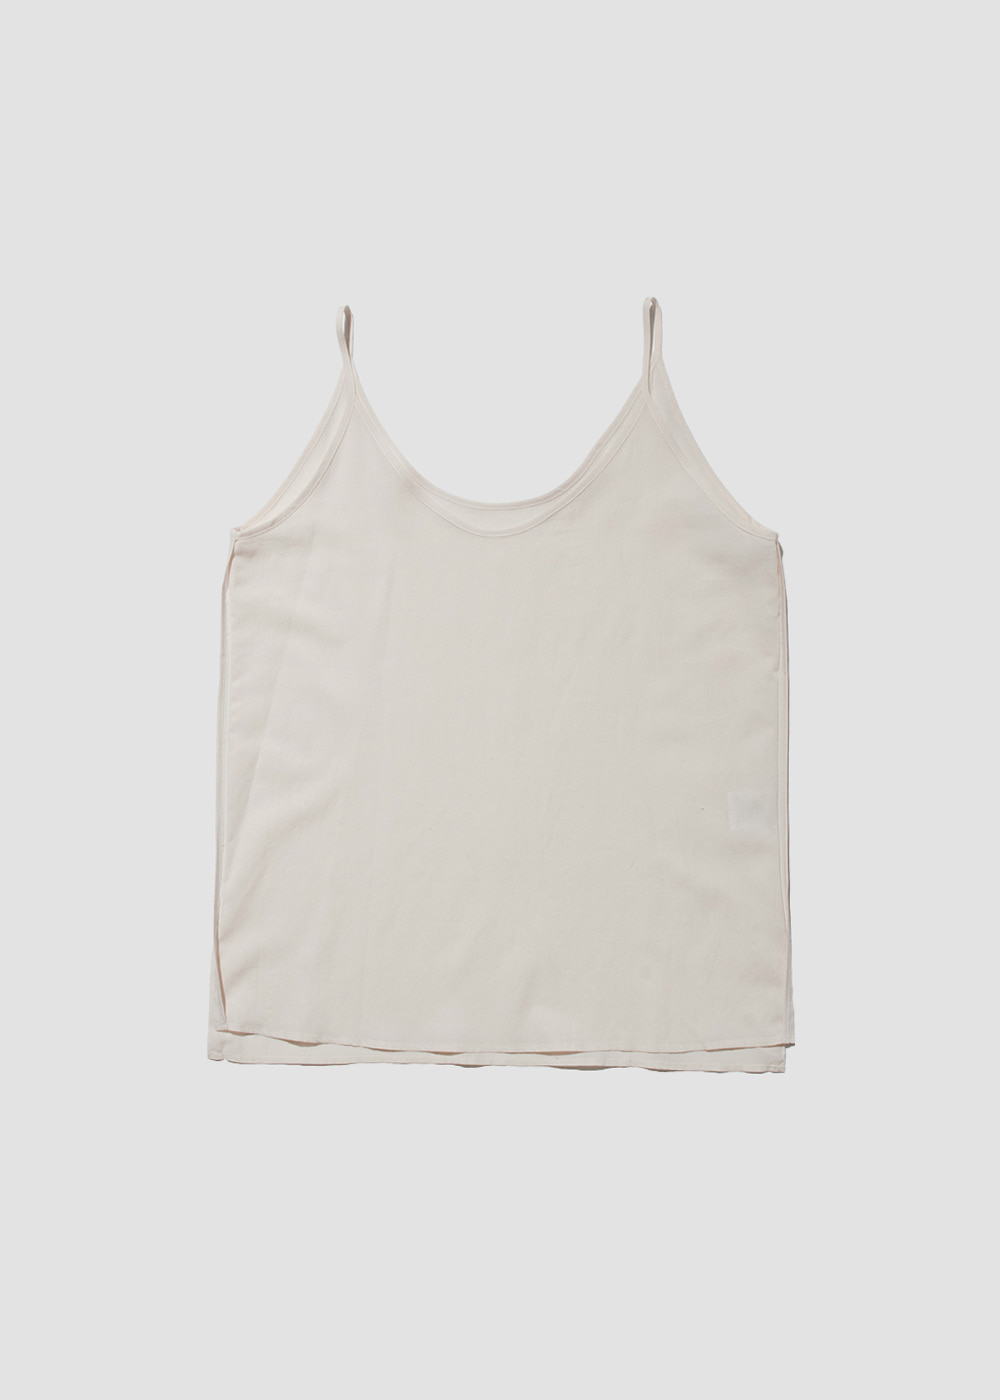 [MARAN] Bread Sleeveless